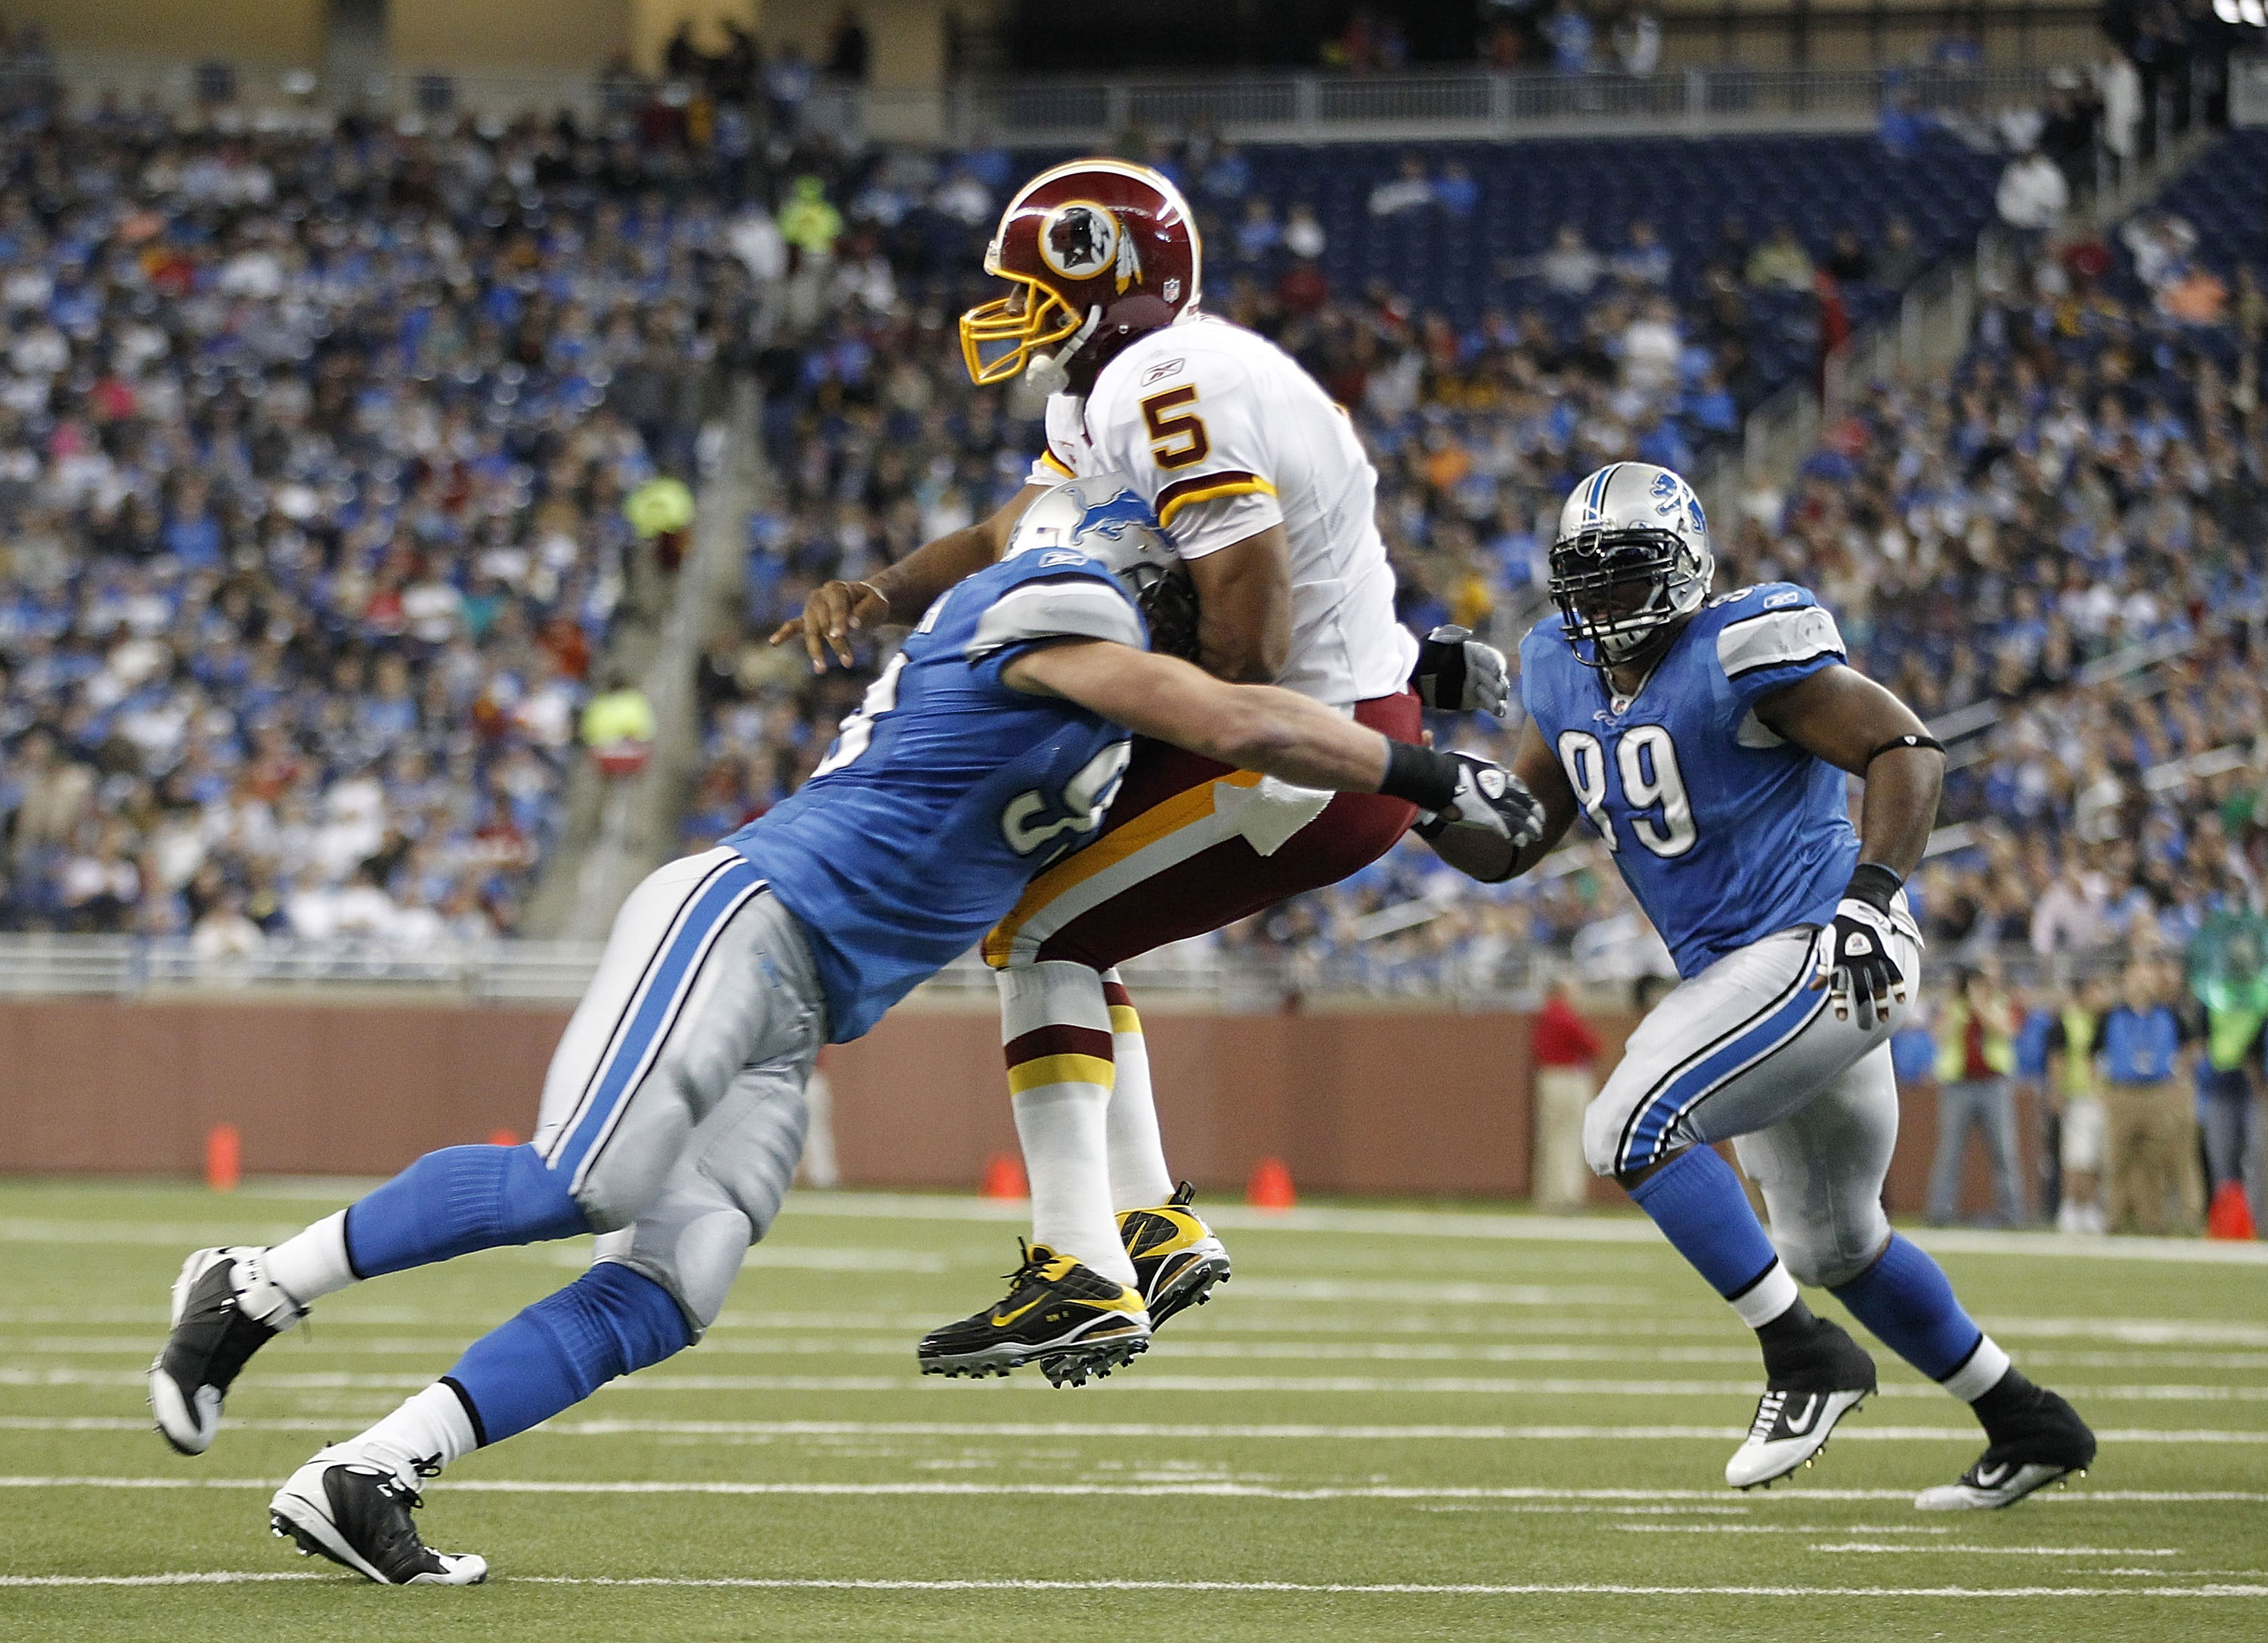 DETROIT - OCTOBER 31: Kyle Vanden Bosch #93 of the Detroit Lions hits Donovan McNabb #5 of the Washington Redskins during the first quarter of the game at Ford Field on October 31, 2010 in Detroit, Michigan. (Photo by Leon Halip/Getty Images)